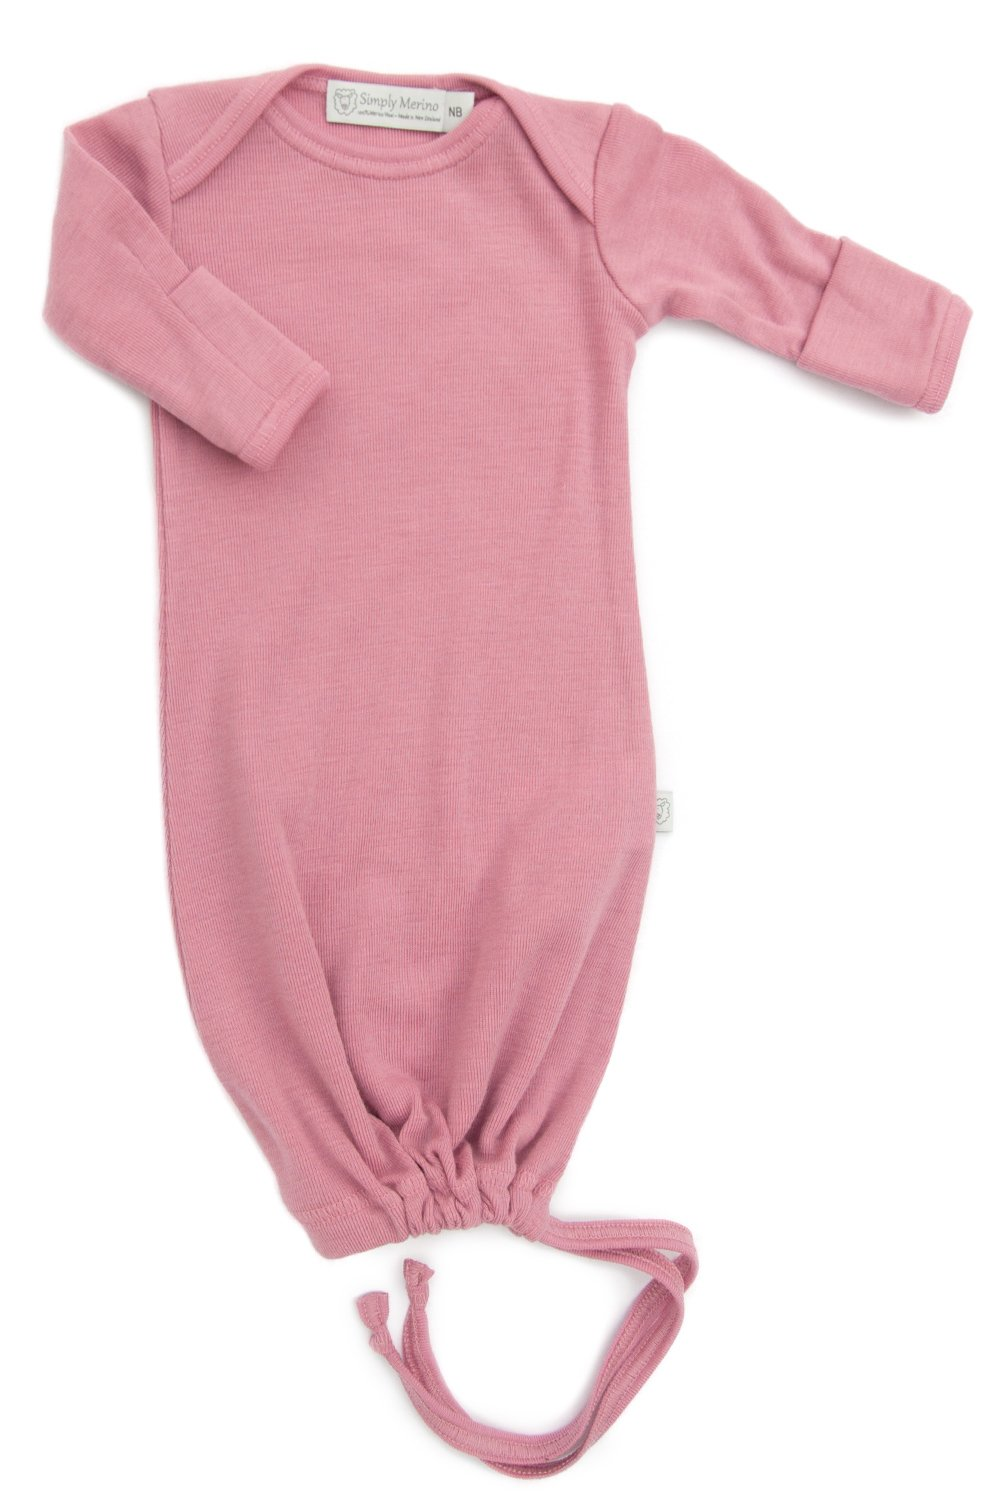 Pure Merino Wool Baby Sleep Sack. Kids Infant Gown Sleeper Bag. Pink Newborn by Simply Merino